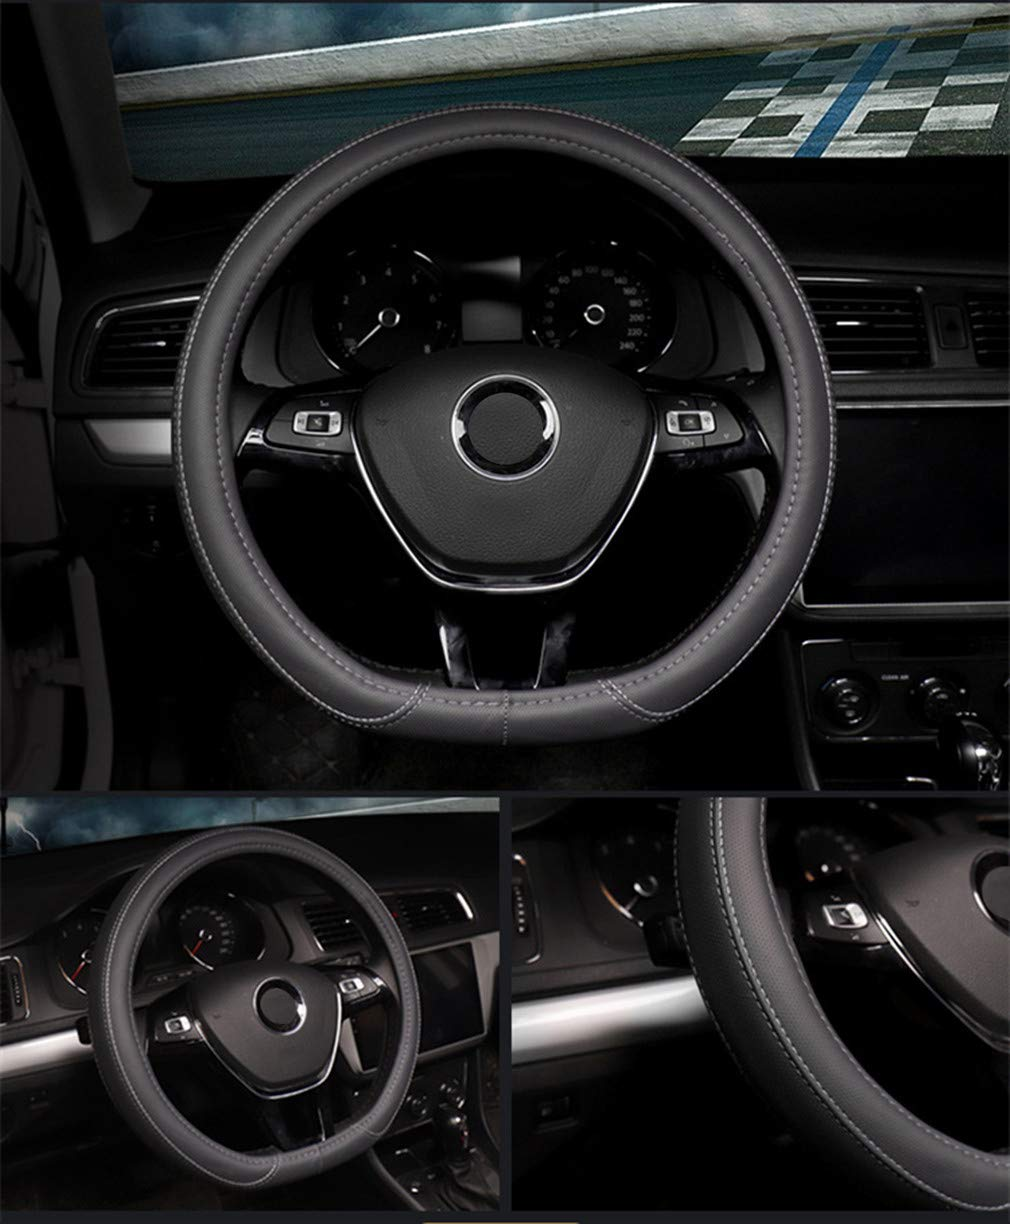 Skidproof Car Steering Wheel Cover Universal 15inch Black, Sheepskin Breathable Coofig Leather Hand Sewing Fashion